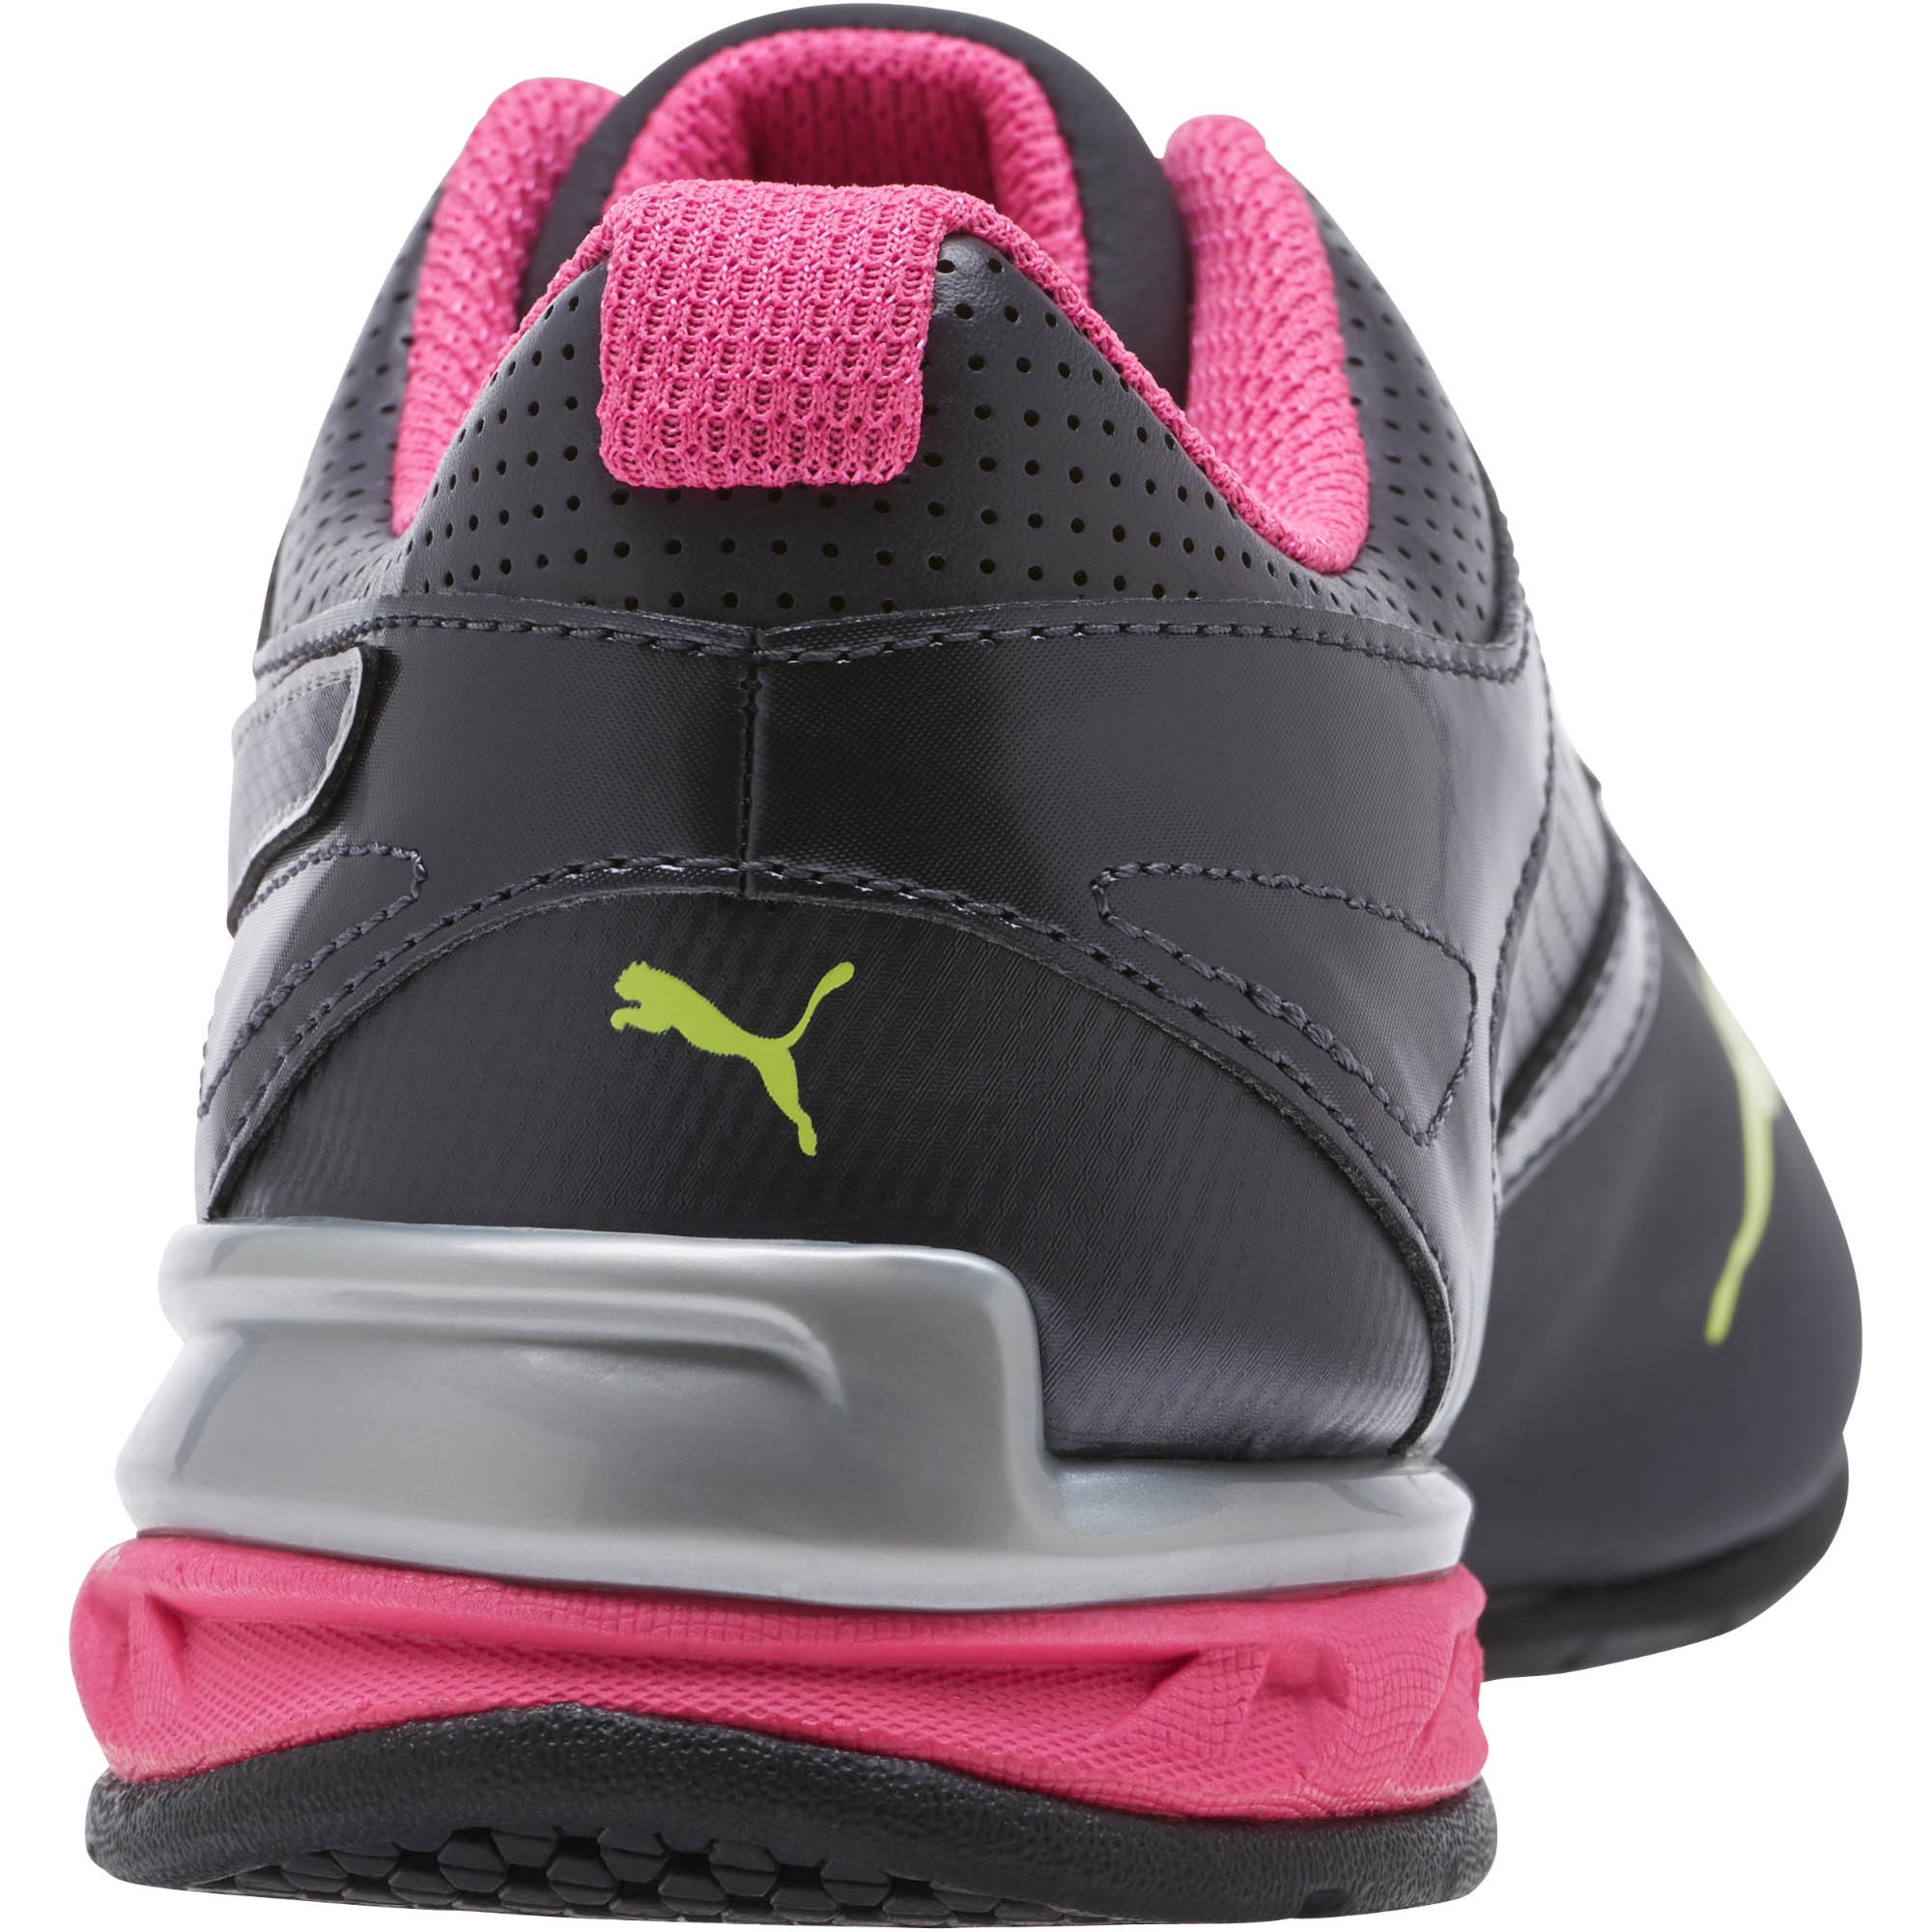 PUMA-Tazon-6-FM-Women-039-s-Sneakers-Women-Shoe-Running thumbnail 17